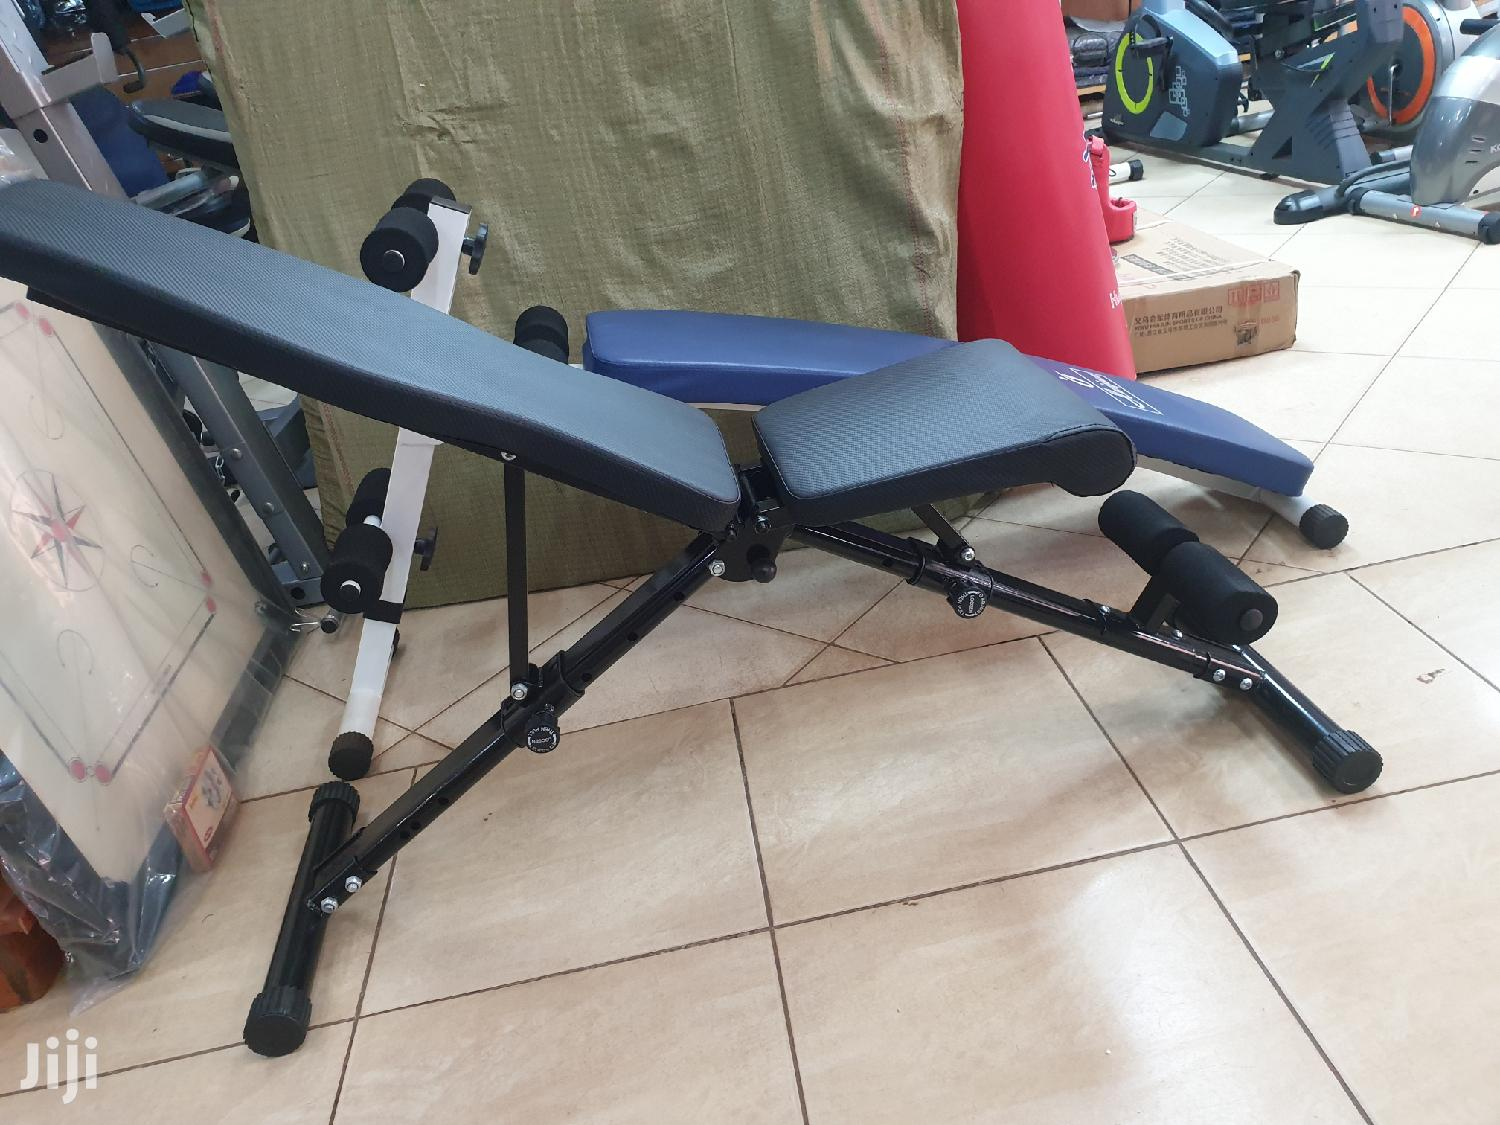 Archive: Adjustable Sit Up Bench for Gym